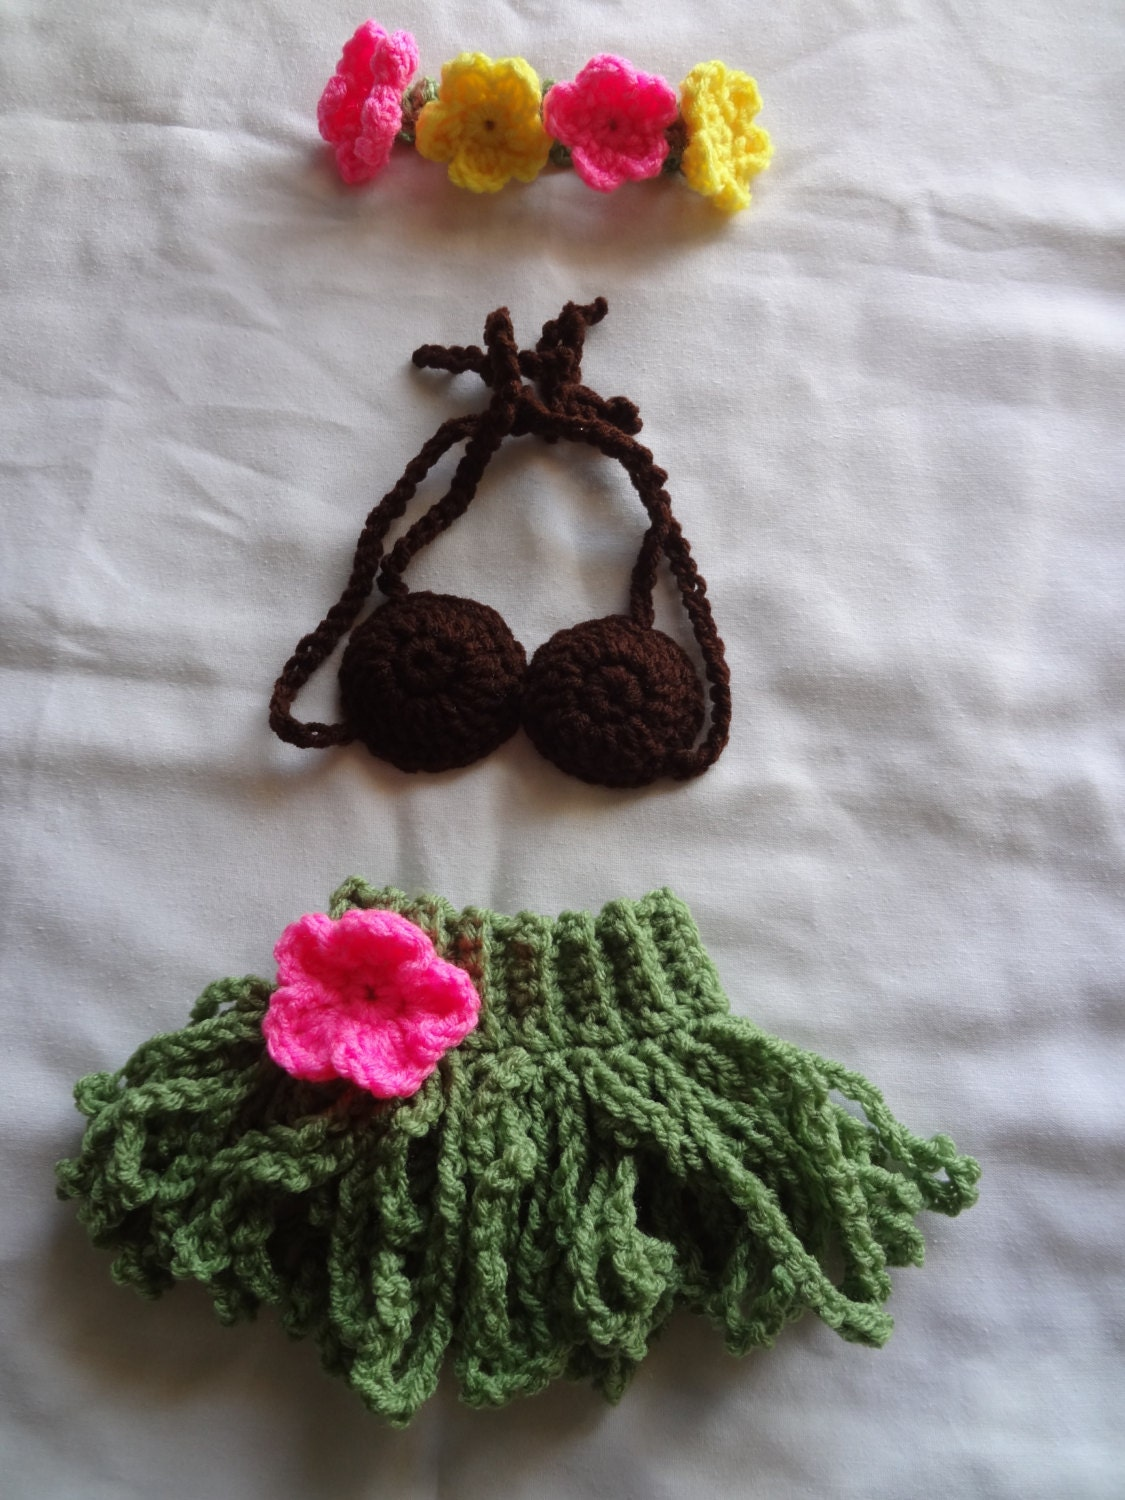 Crochet Hibiscus Flower Pattern Free : Crochet Hula Skirt Coconut top and Flower headband. Baby